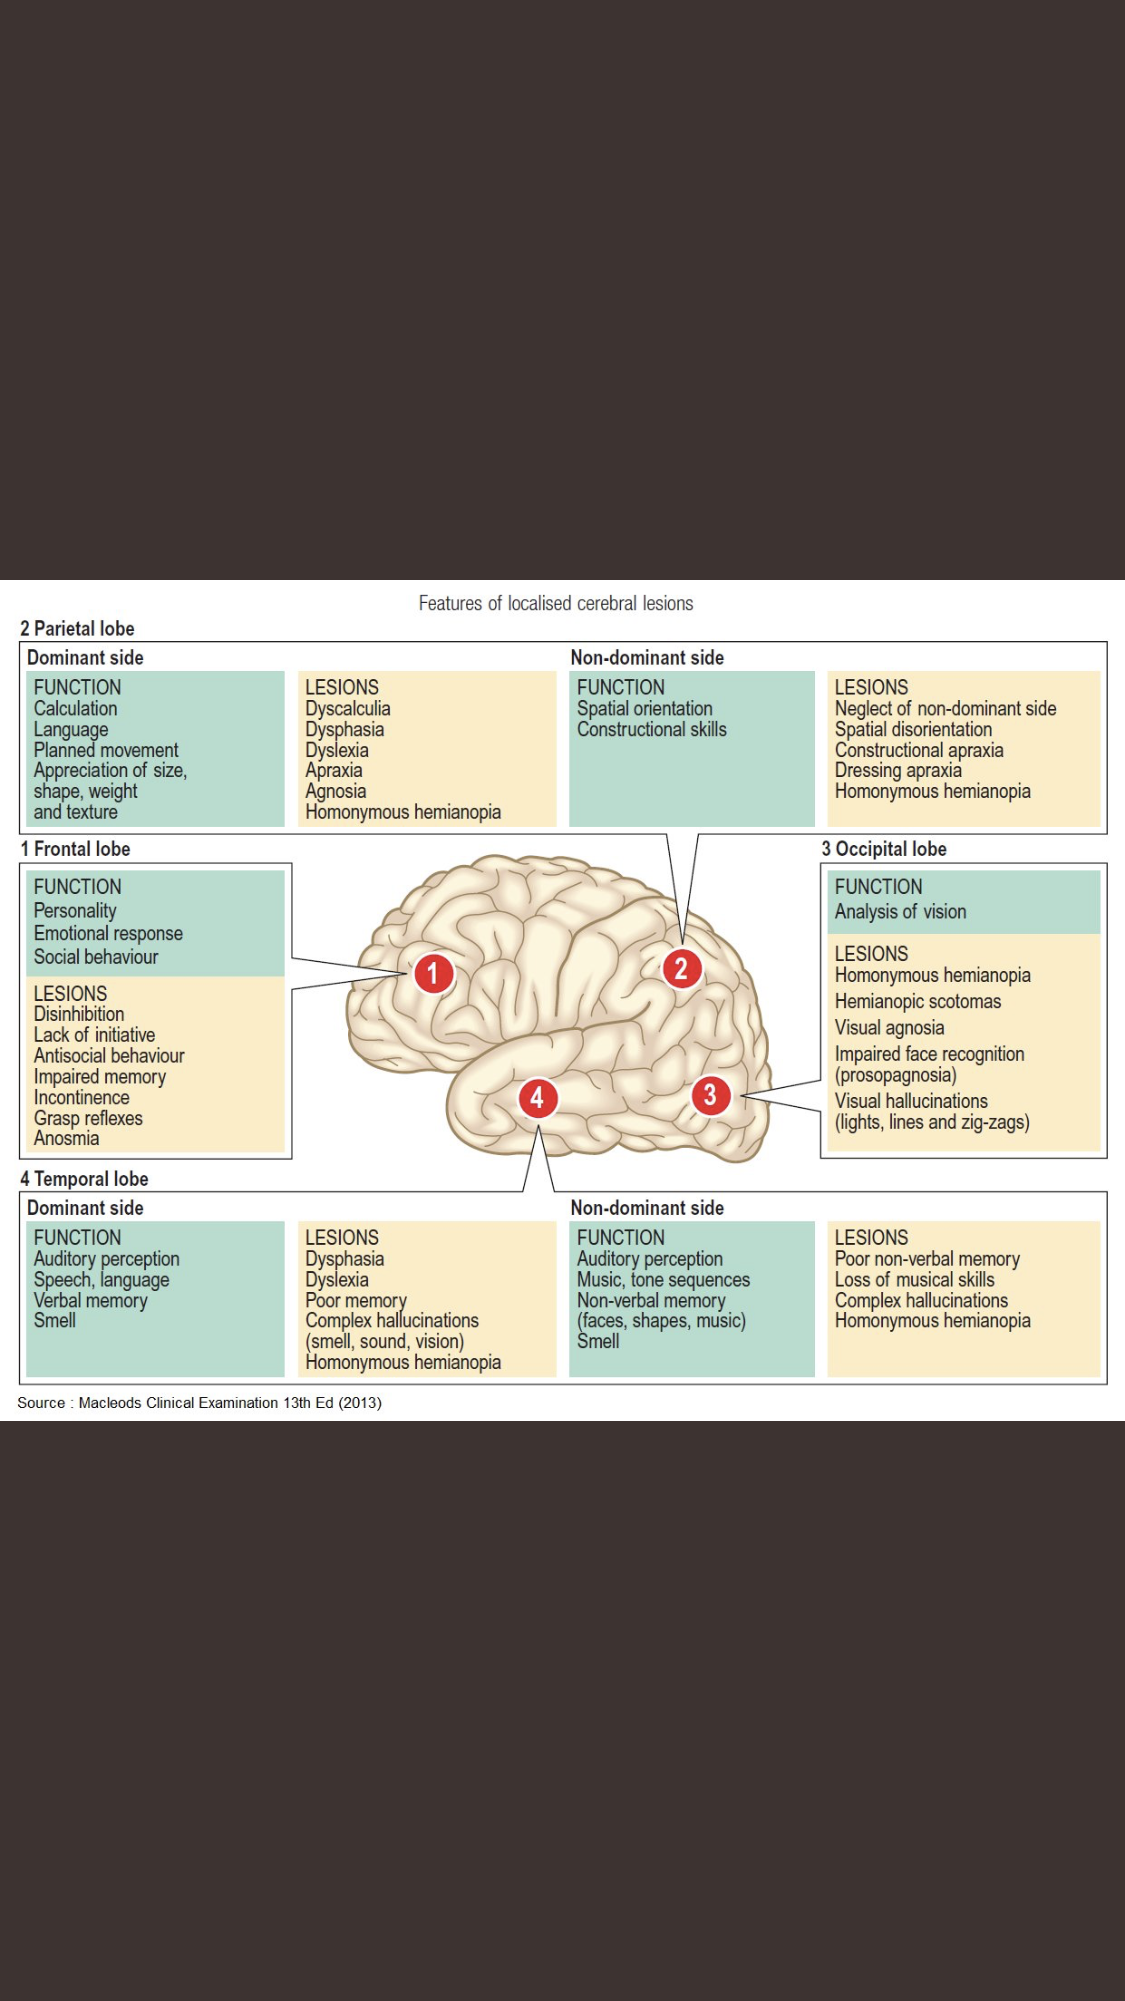 #Localizations for #brain injuries and lesions